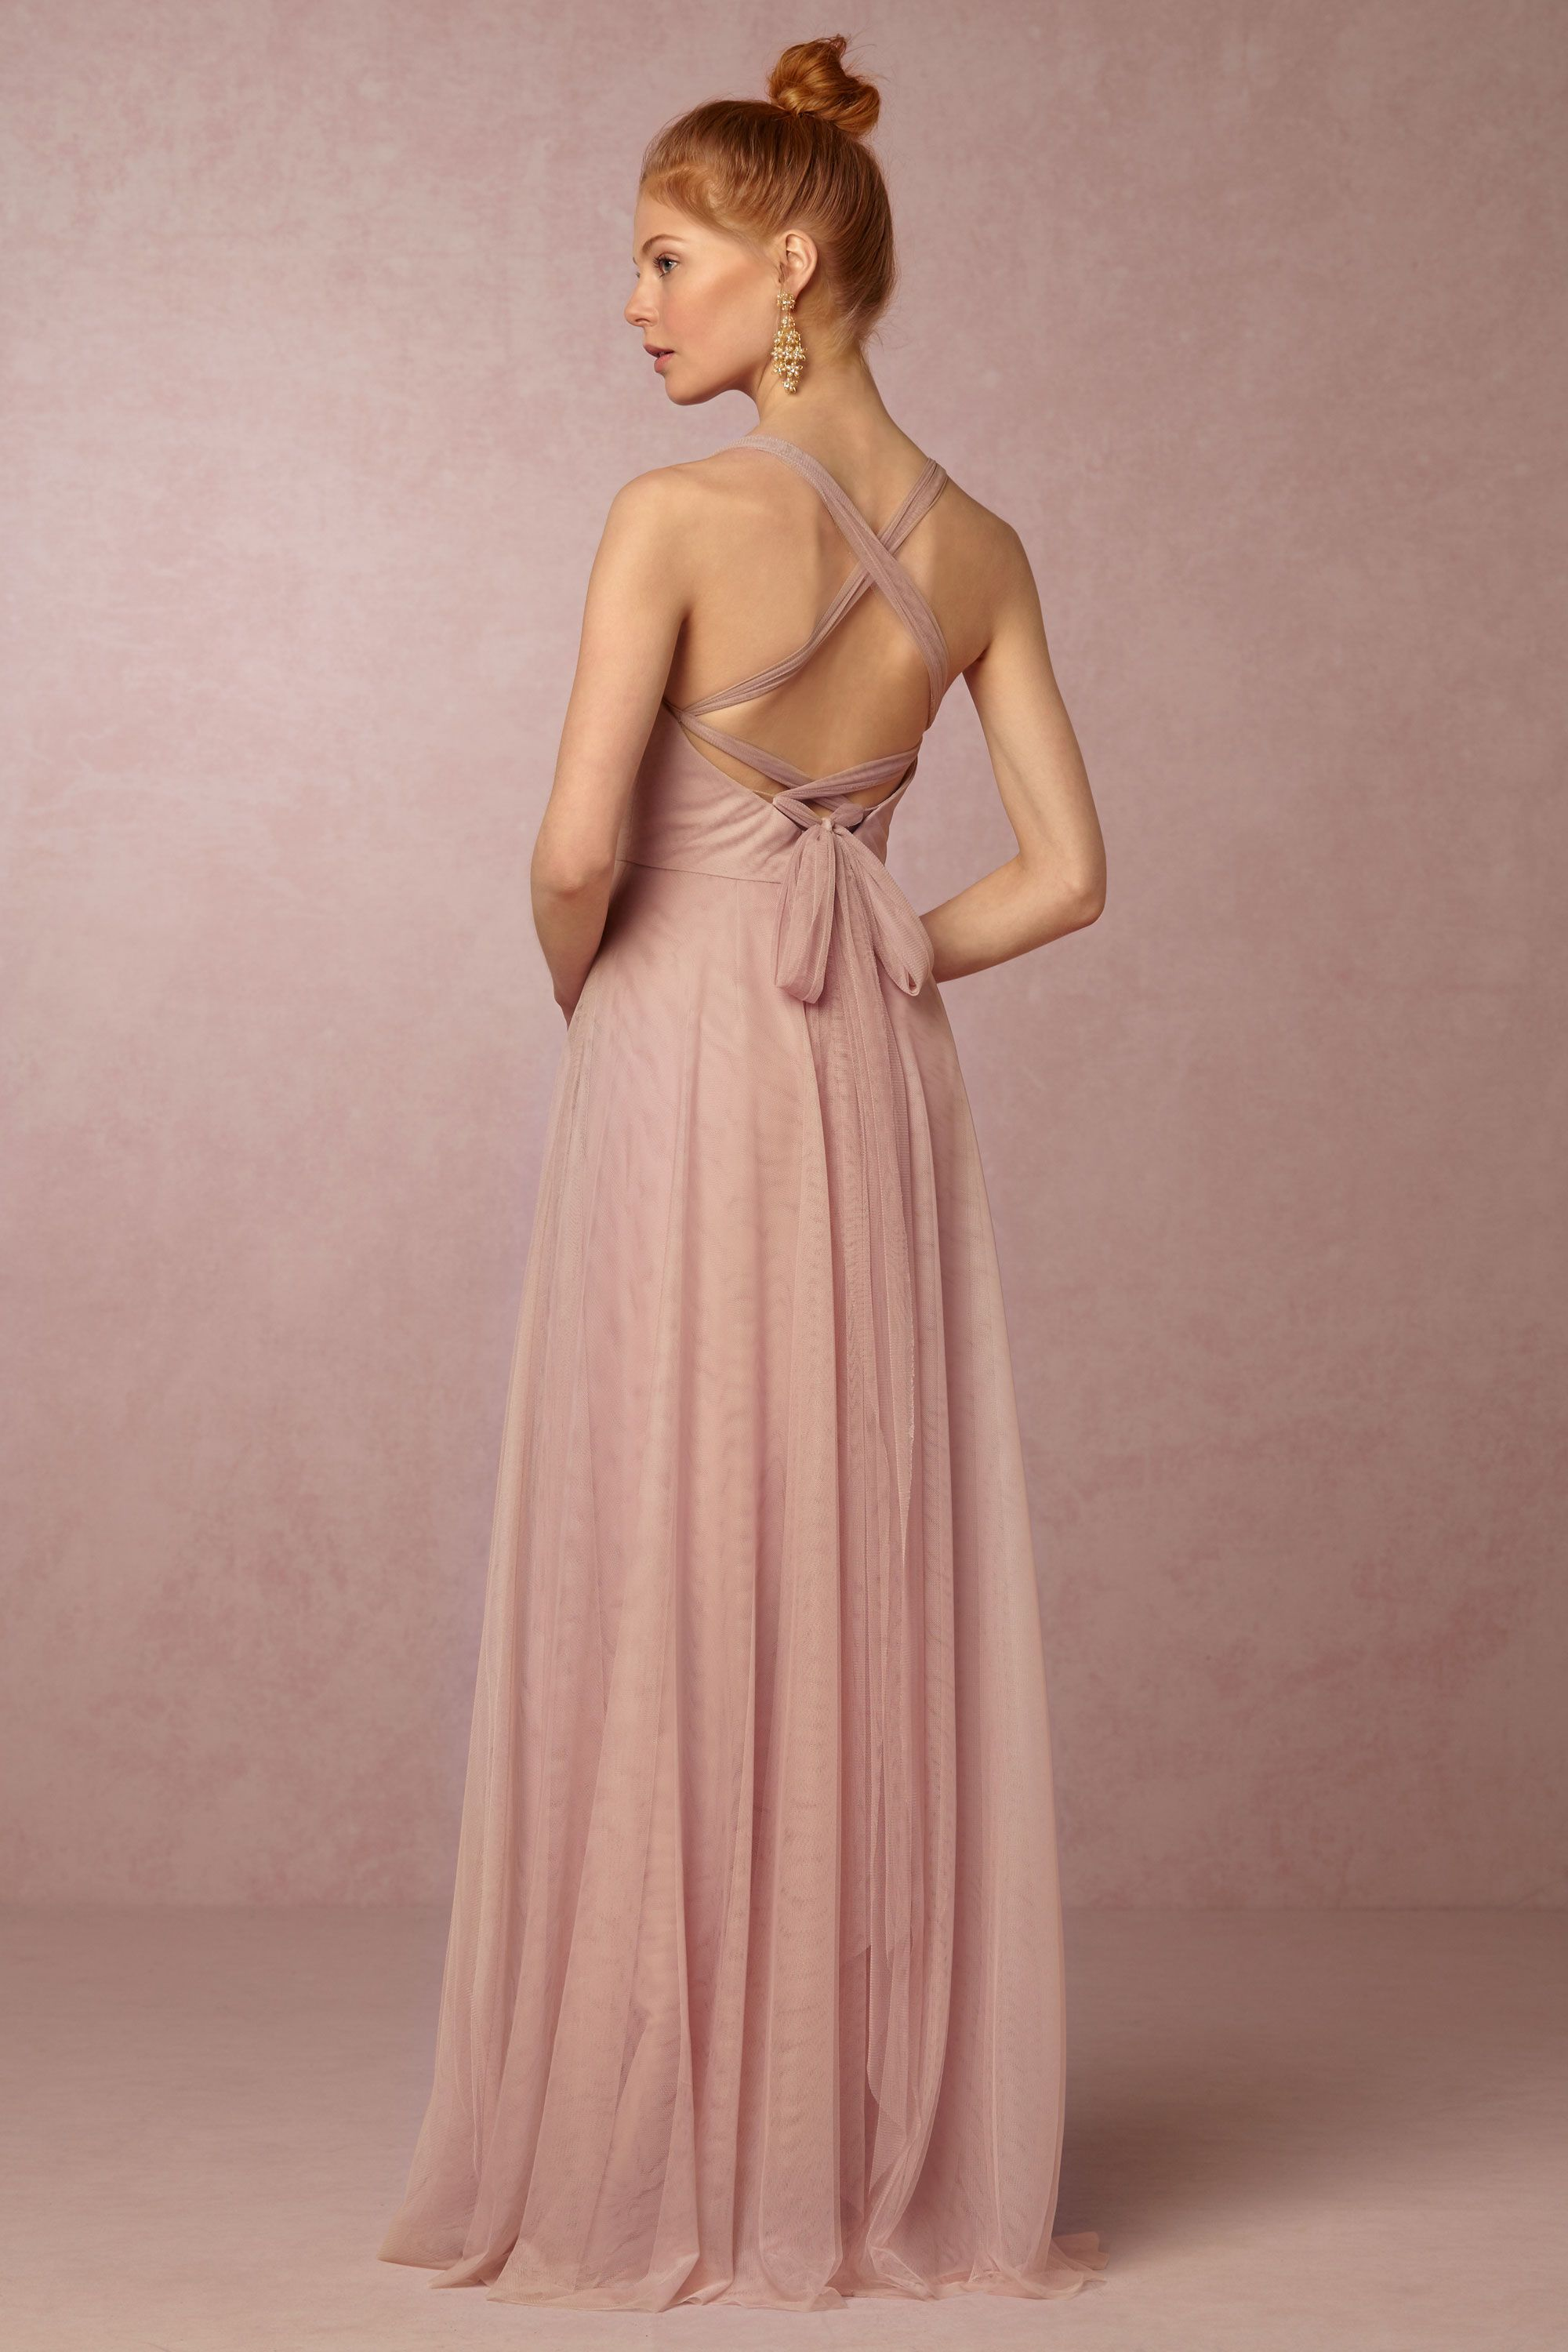 rose quartz bridesmaid dress with convertible back | Zaria Dress ...